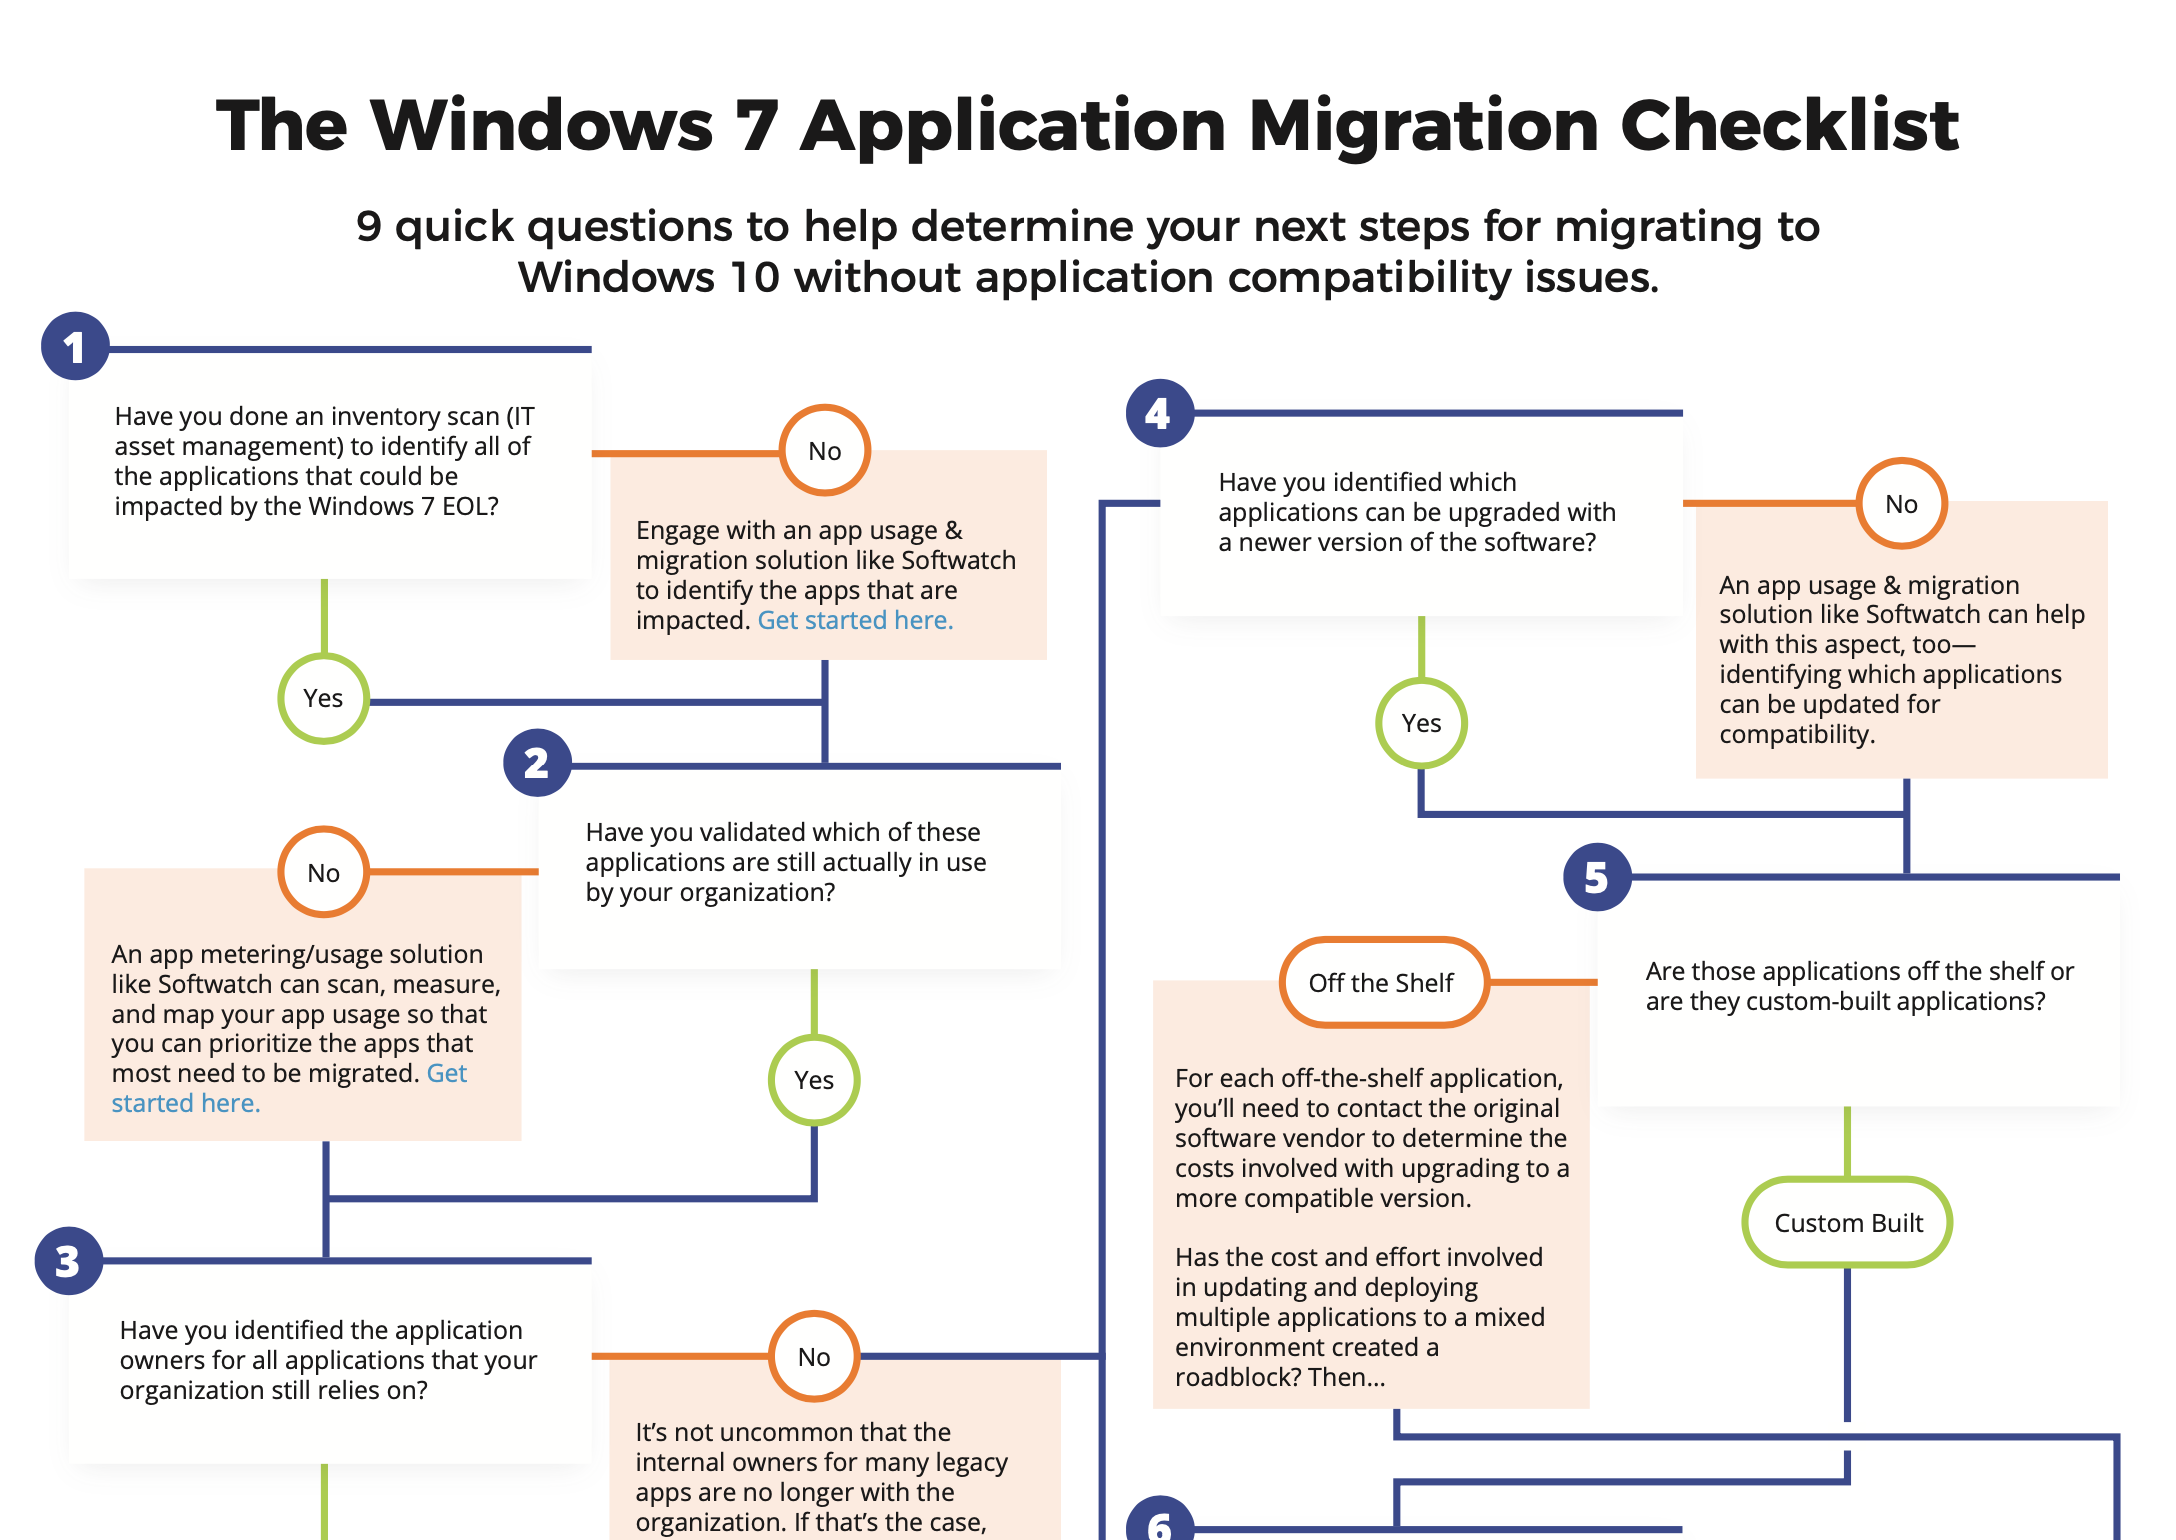 The Windows 7 Application Migration Checklist